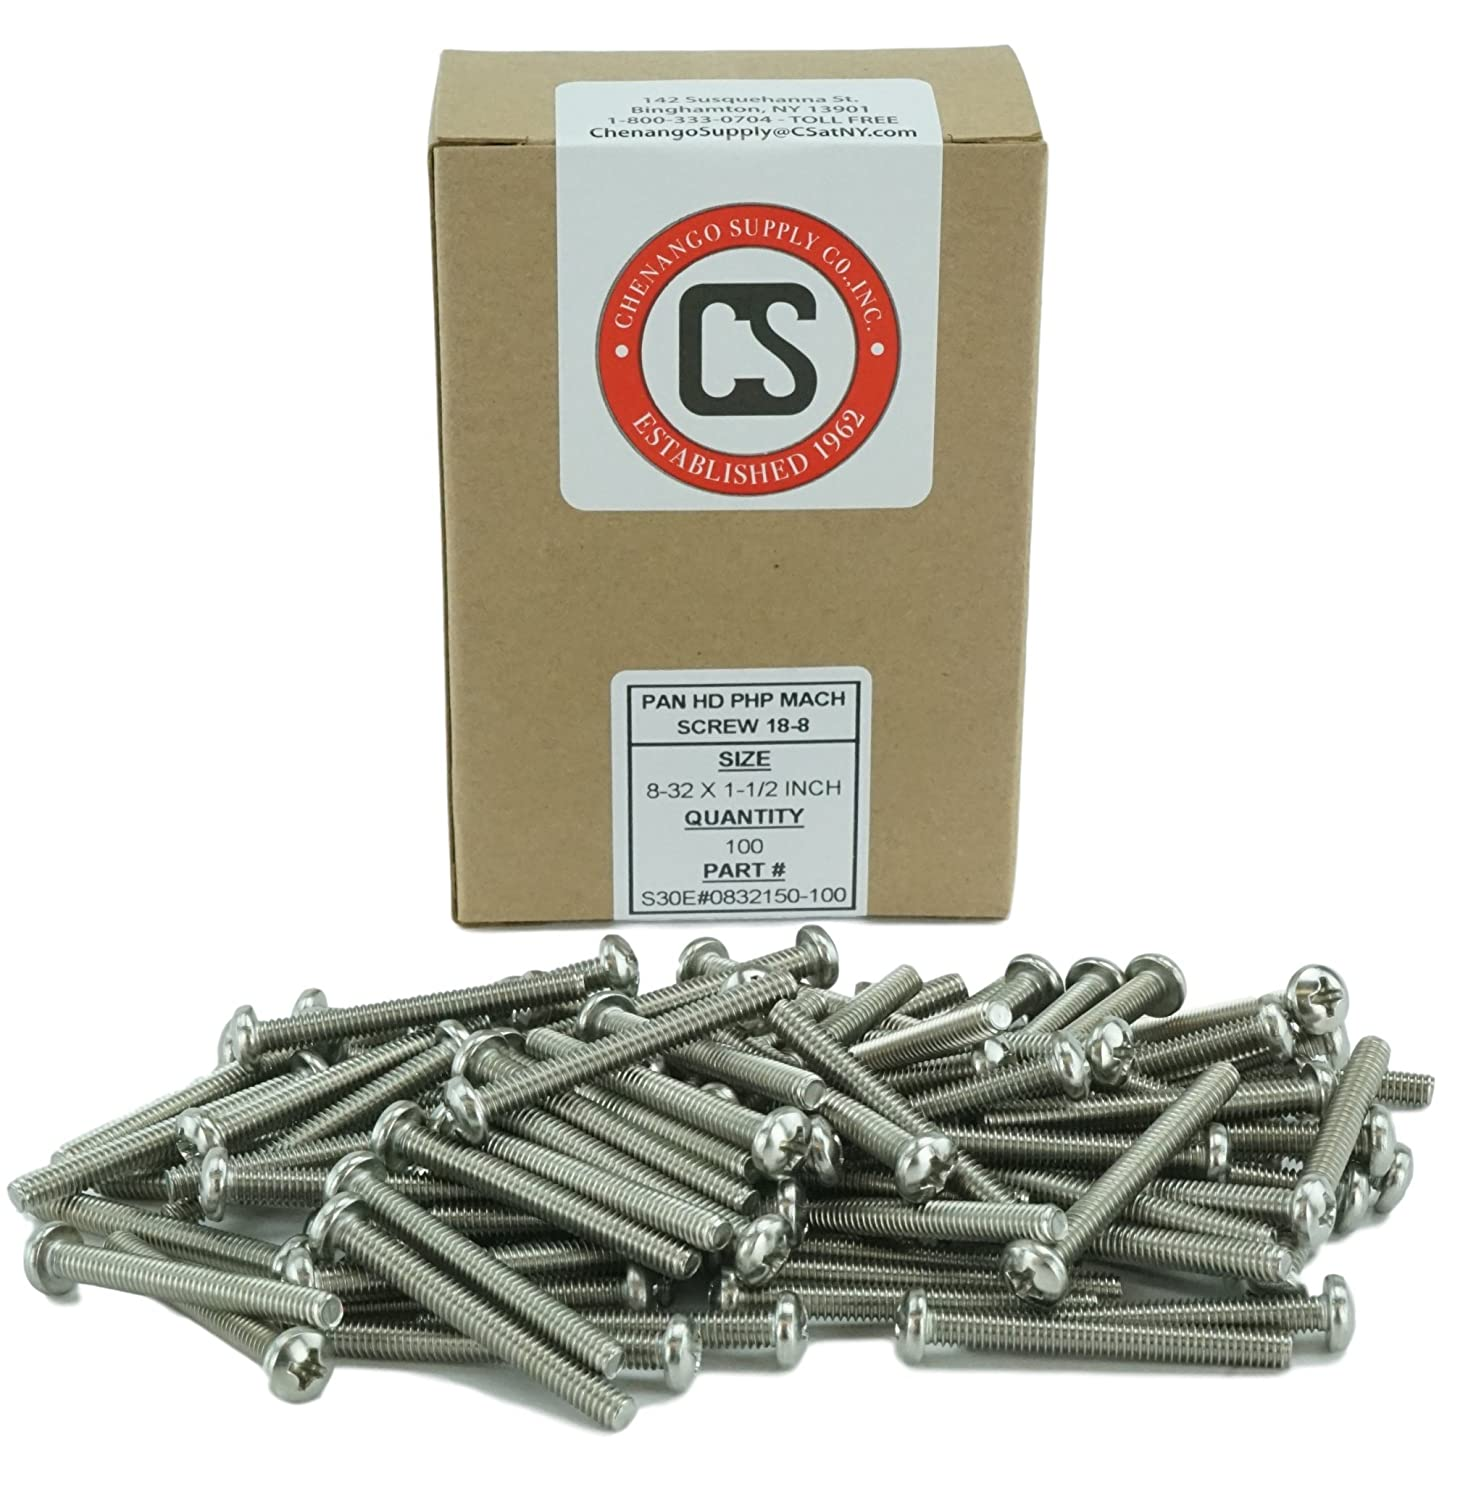 Stainless Steel 18-8 Stainless 8-32 x 1 100 pcs, 8-32 x 1 3//8 to 3 Lengths Available Machine Thread Phillips Drive Pan Head Machine Screws Full Thread